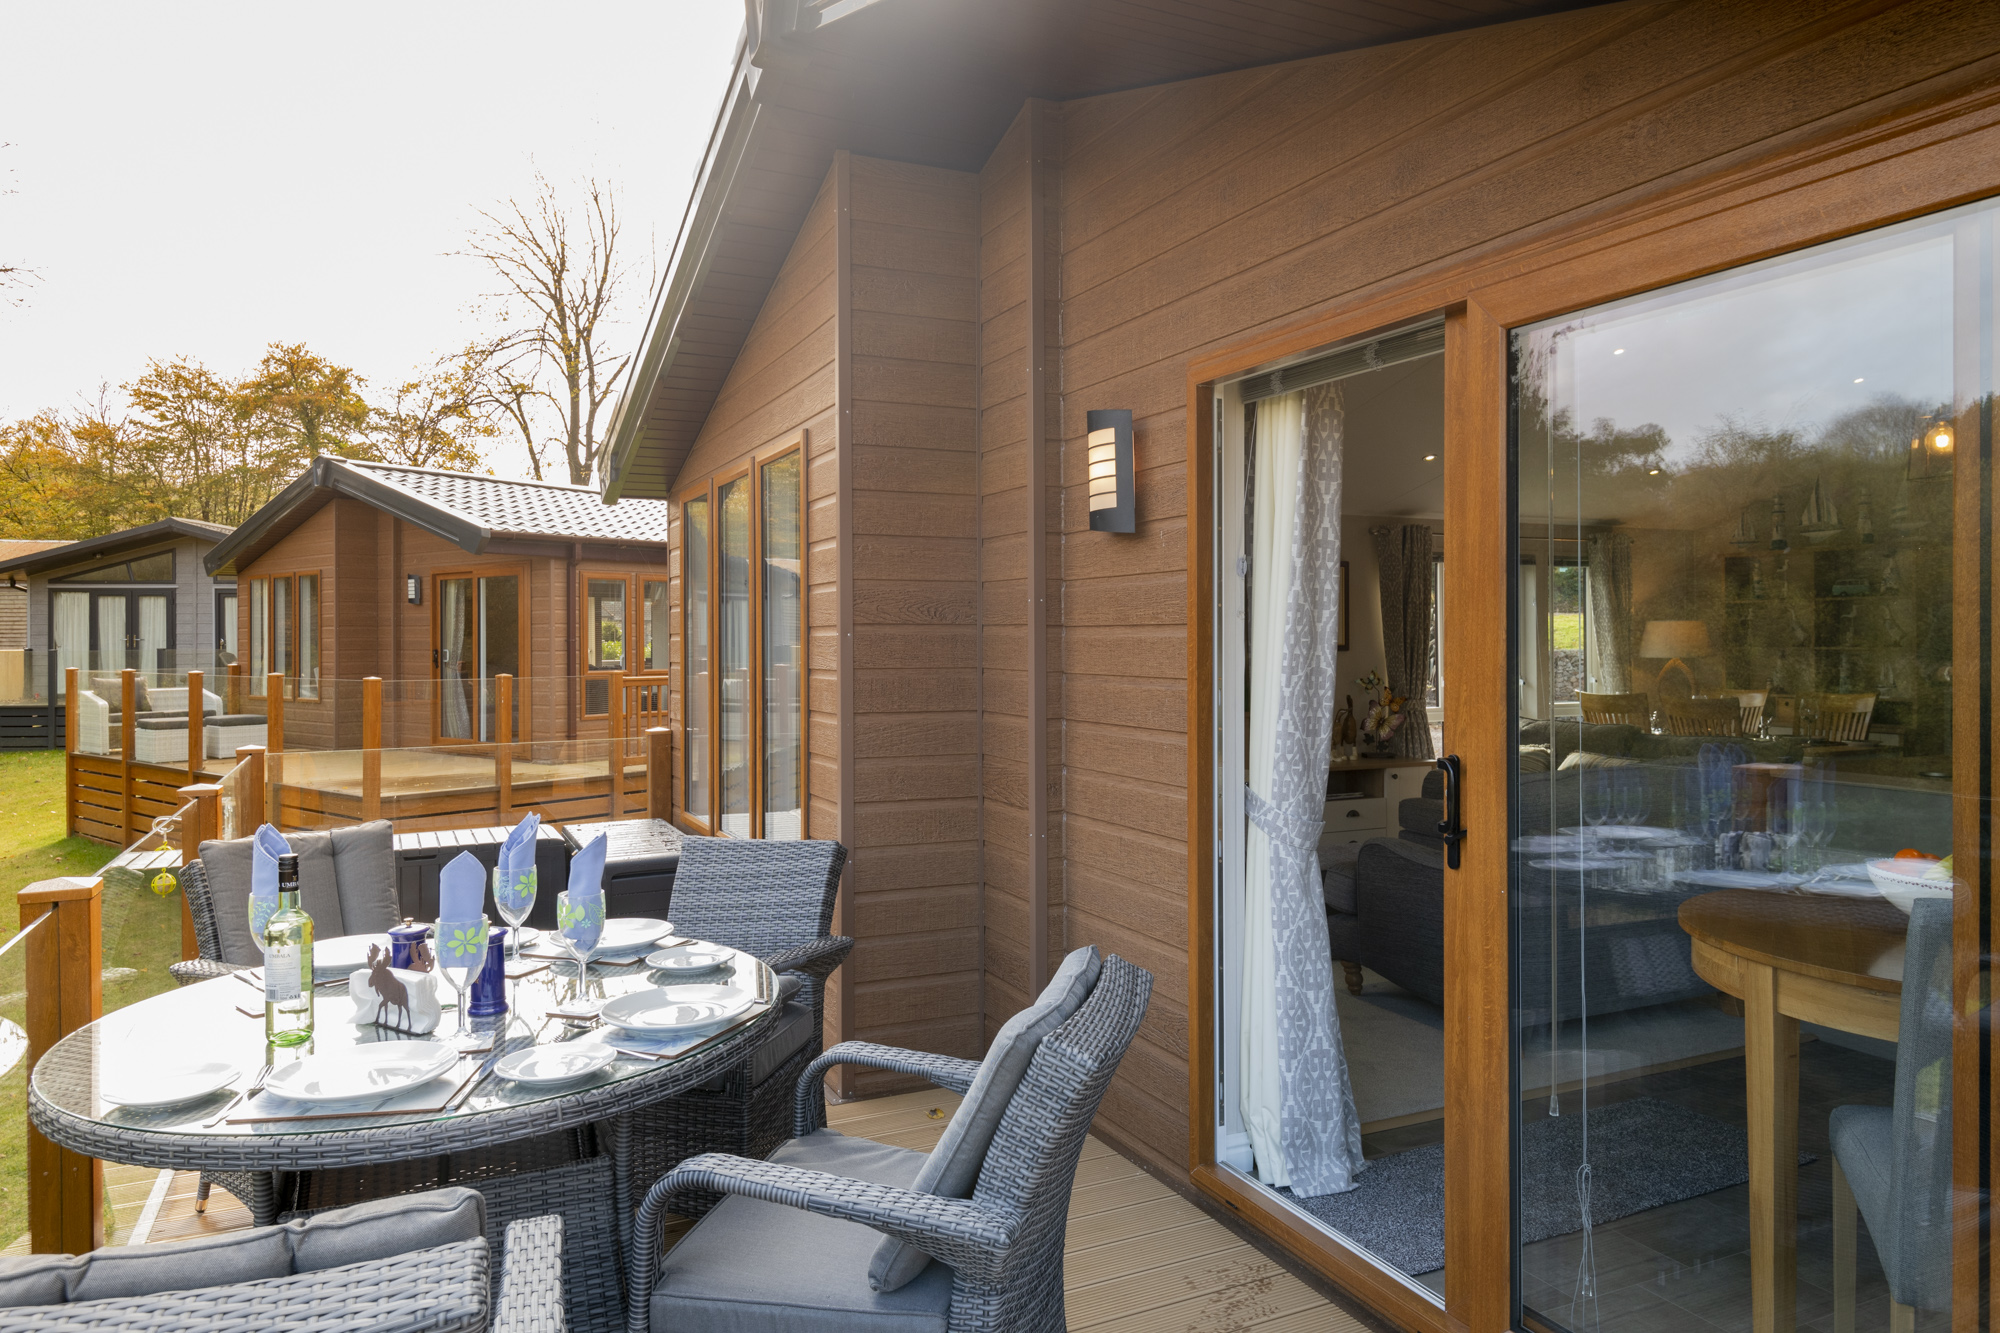 Glass of wine alfresco style at Lakeside Haven lodge